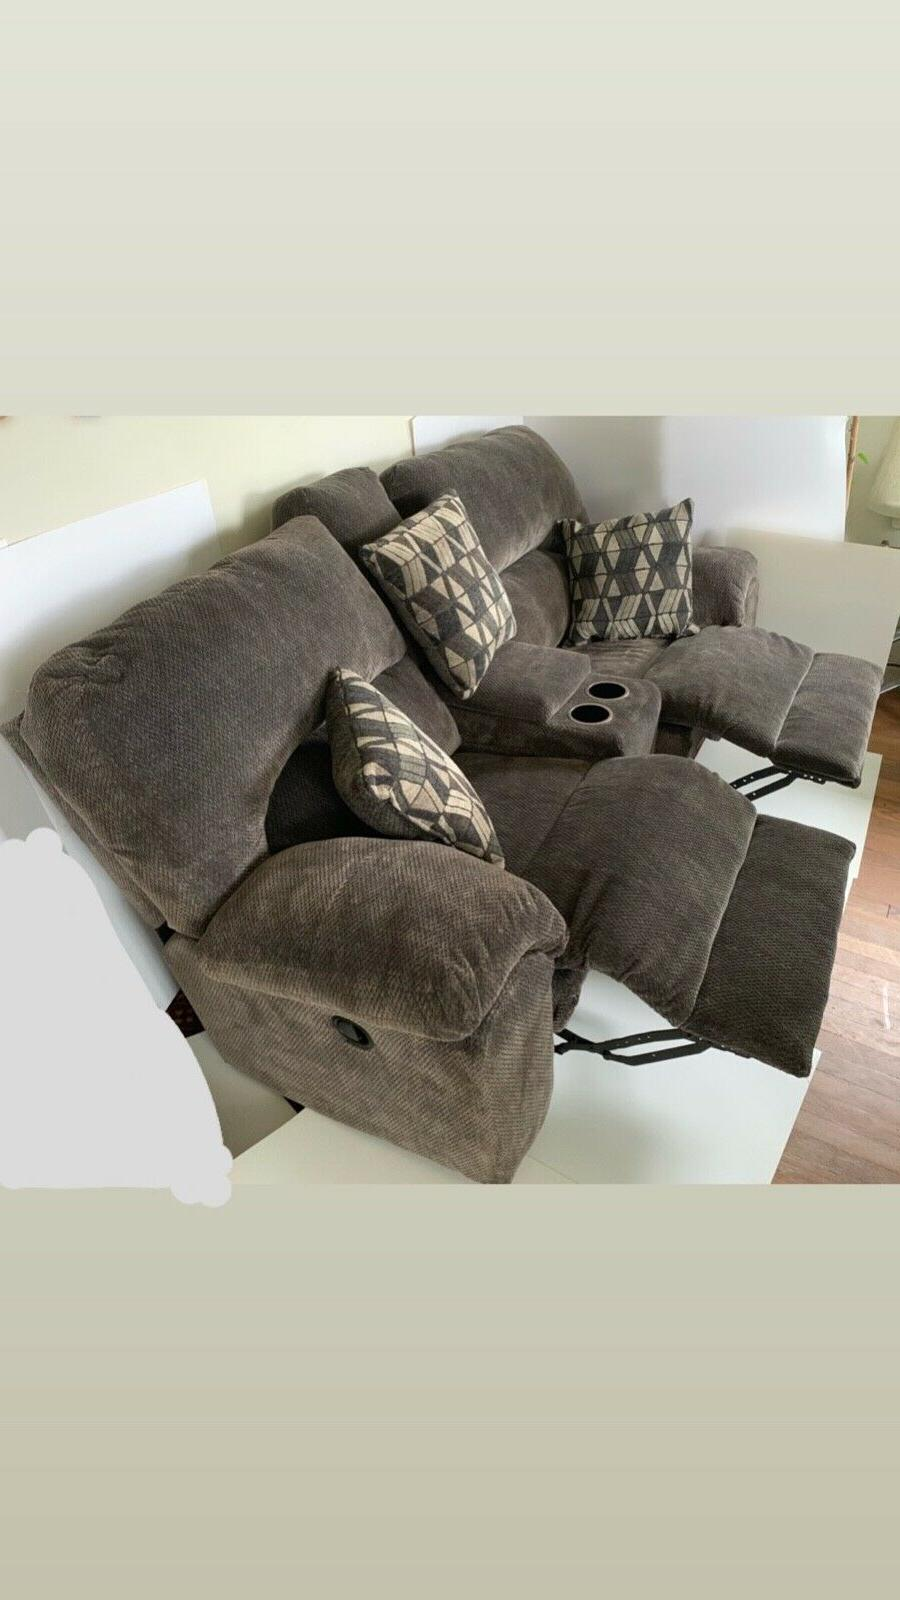 Super Motion sofa/recliner from Delivery